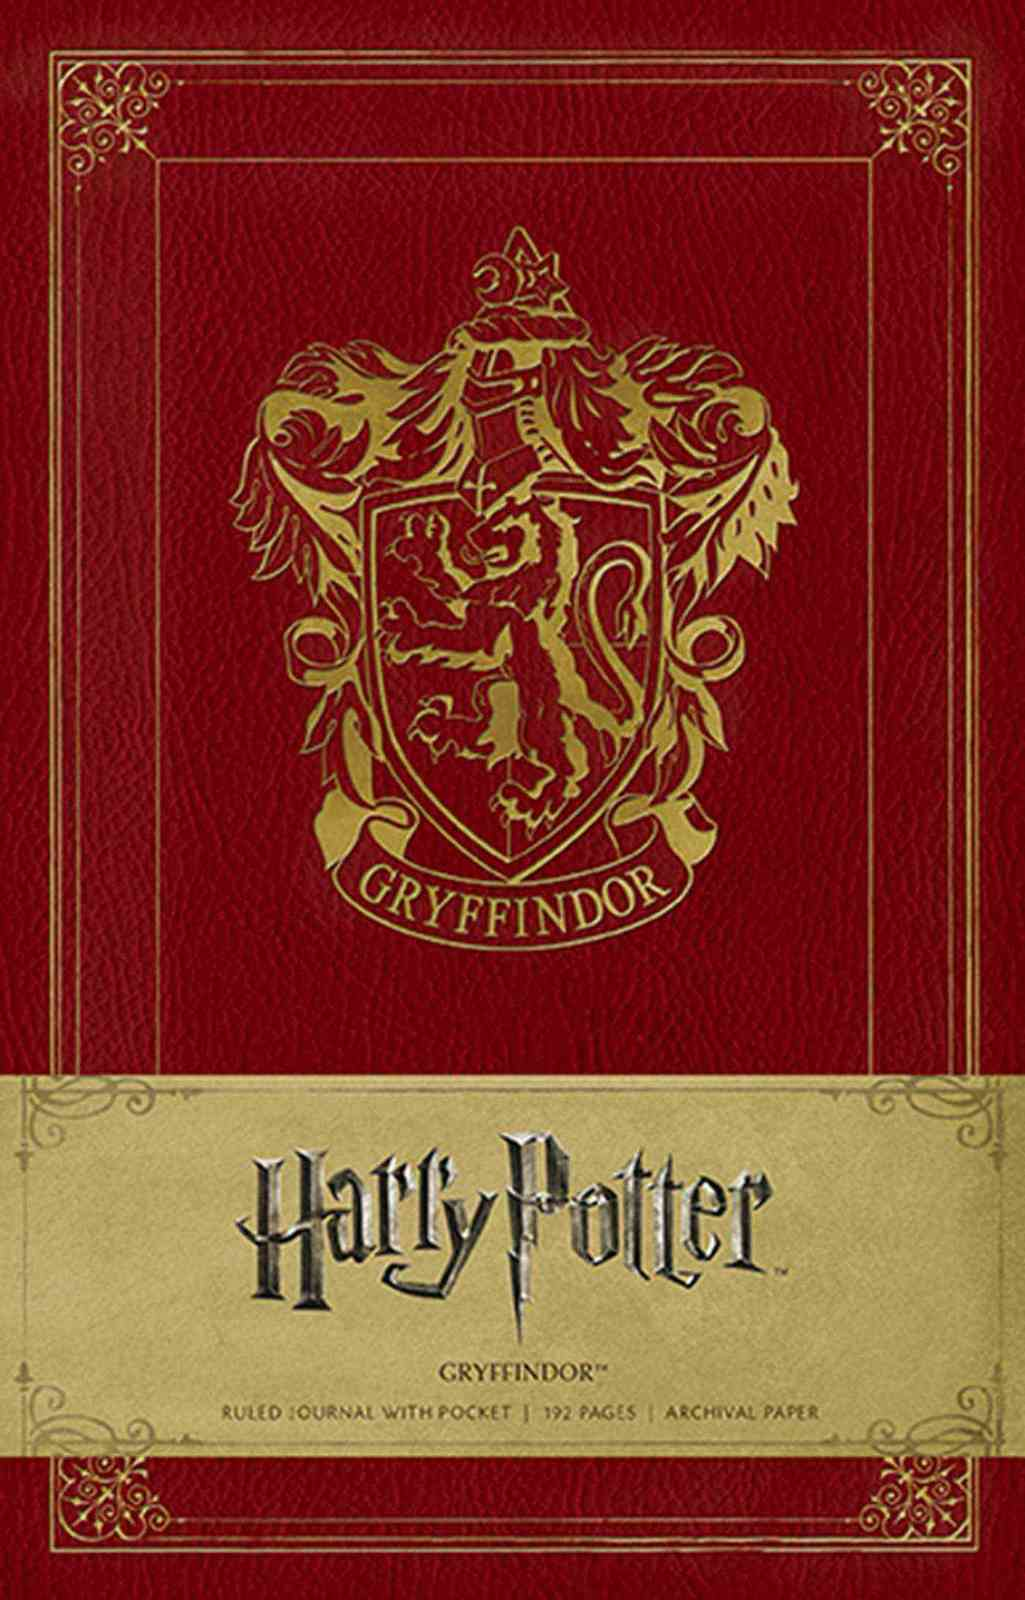 Harry Potter Gryffindor Hardcover Ruled Journal by Insight Editions image